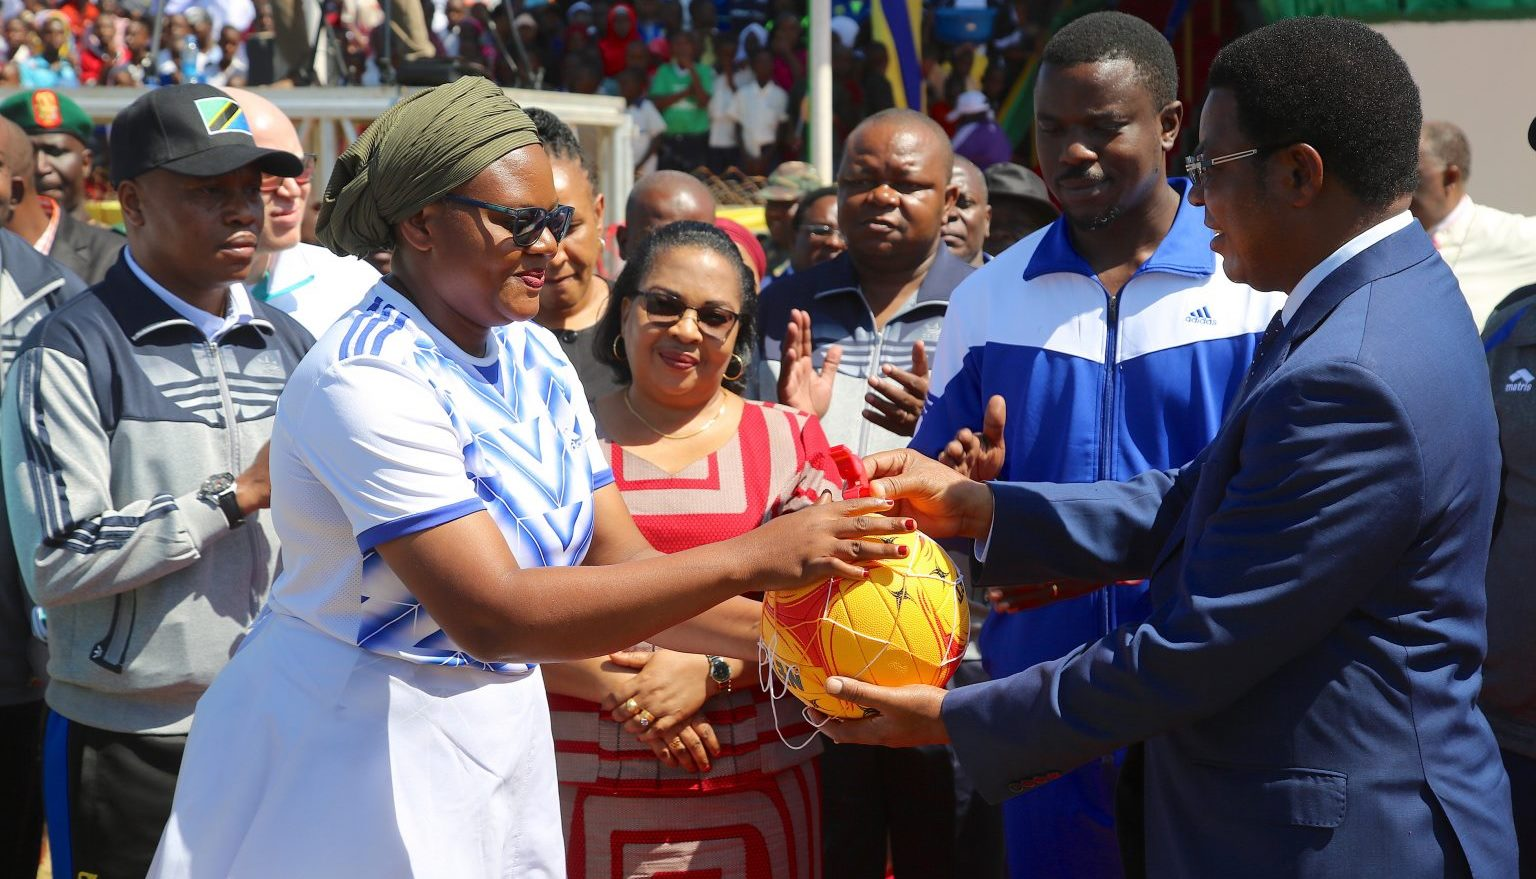 PM sees light in physical education